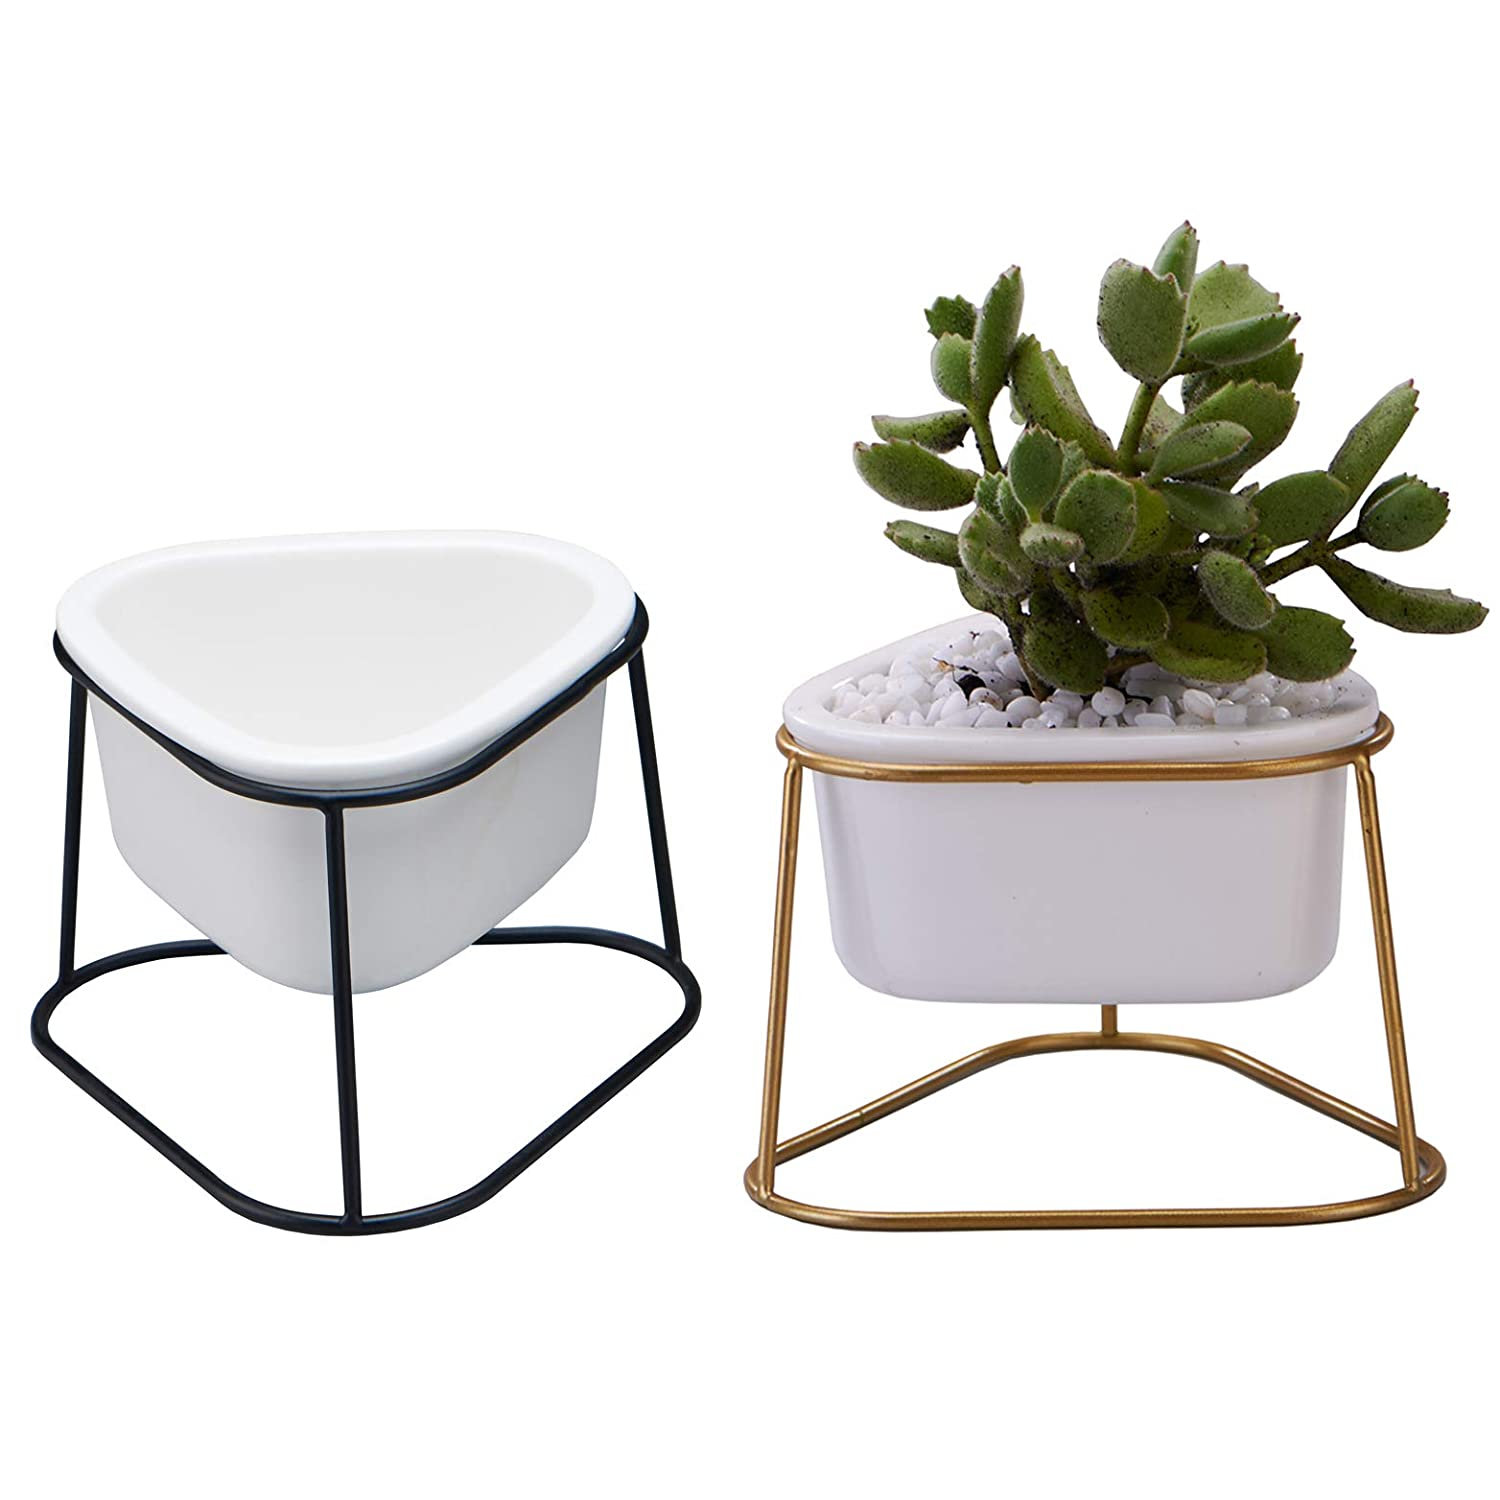 LICHAMP 4-inch Small Triangle Planter Pots, 2 Pack 4.1-inch White Succulent Pots Ceramic with Metal Stand for Cactus and Succulent Decoration